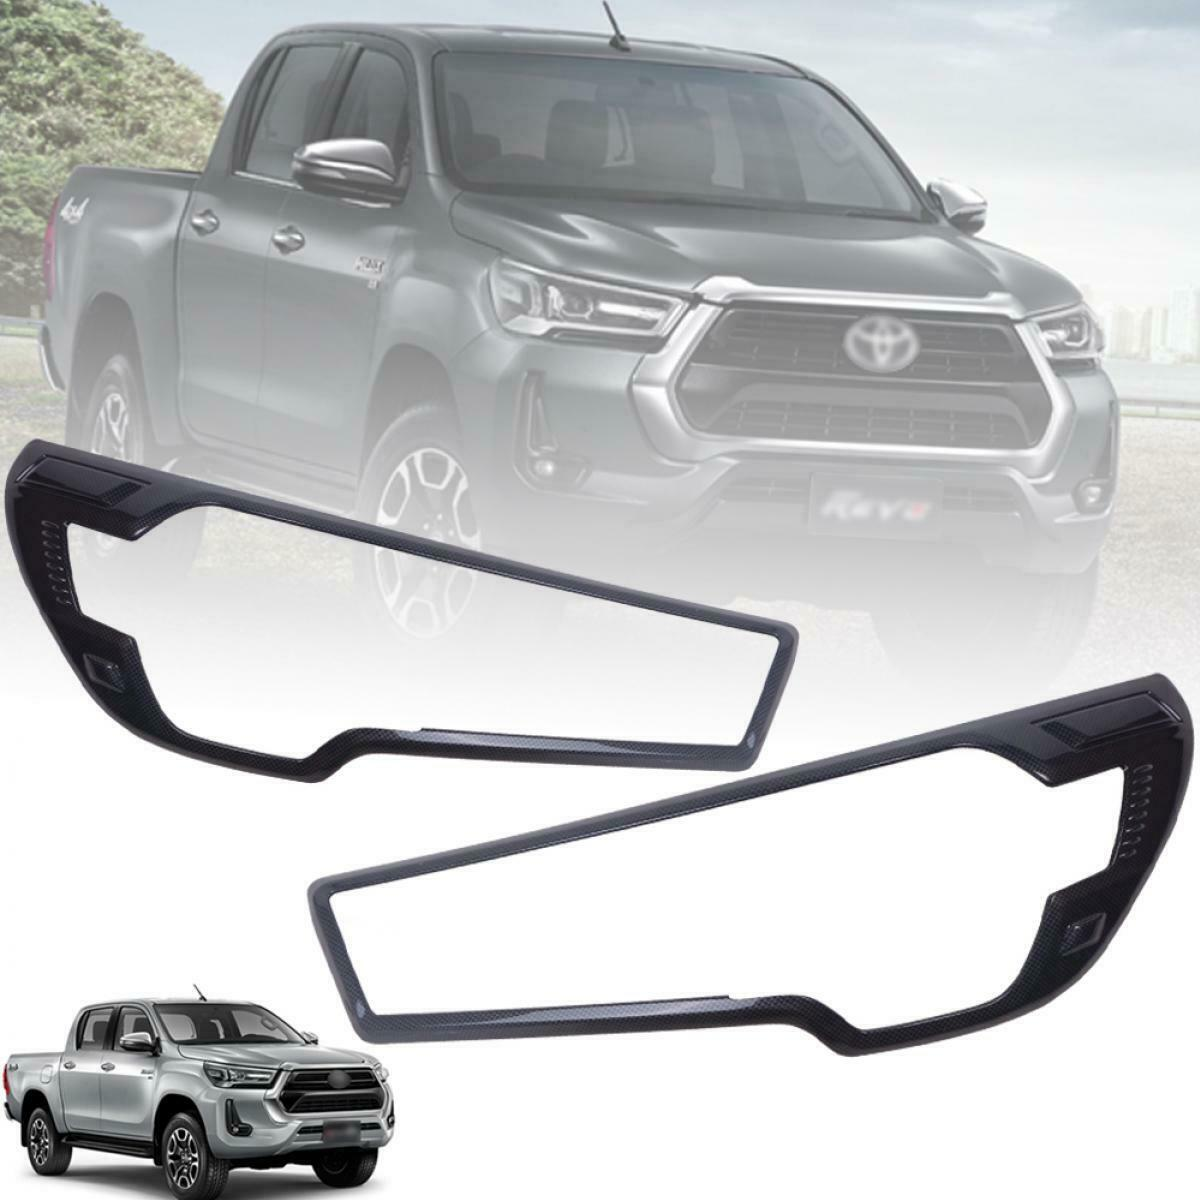 Cover Head Light Lamp Black For Toyota Hilux Revo Rocco 4WD 2020-2021